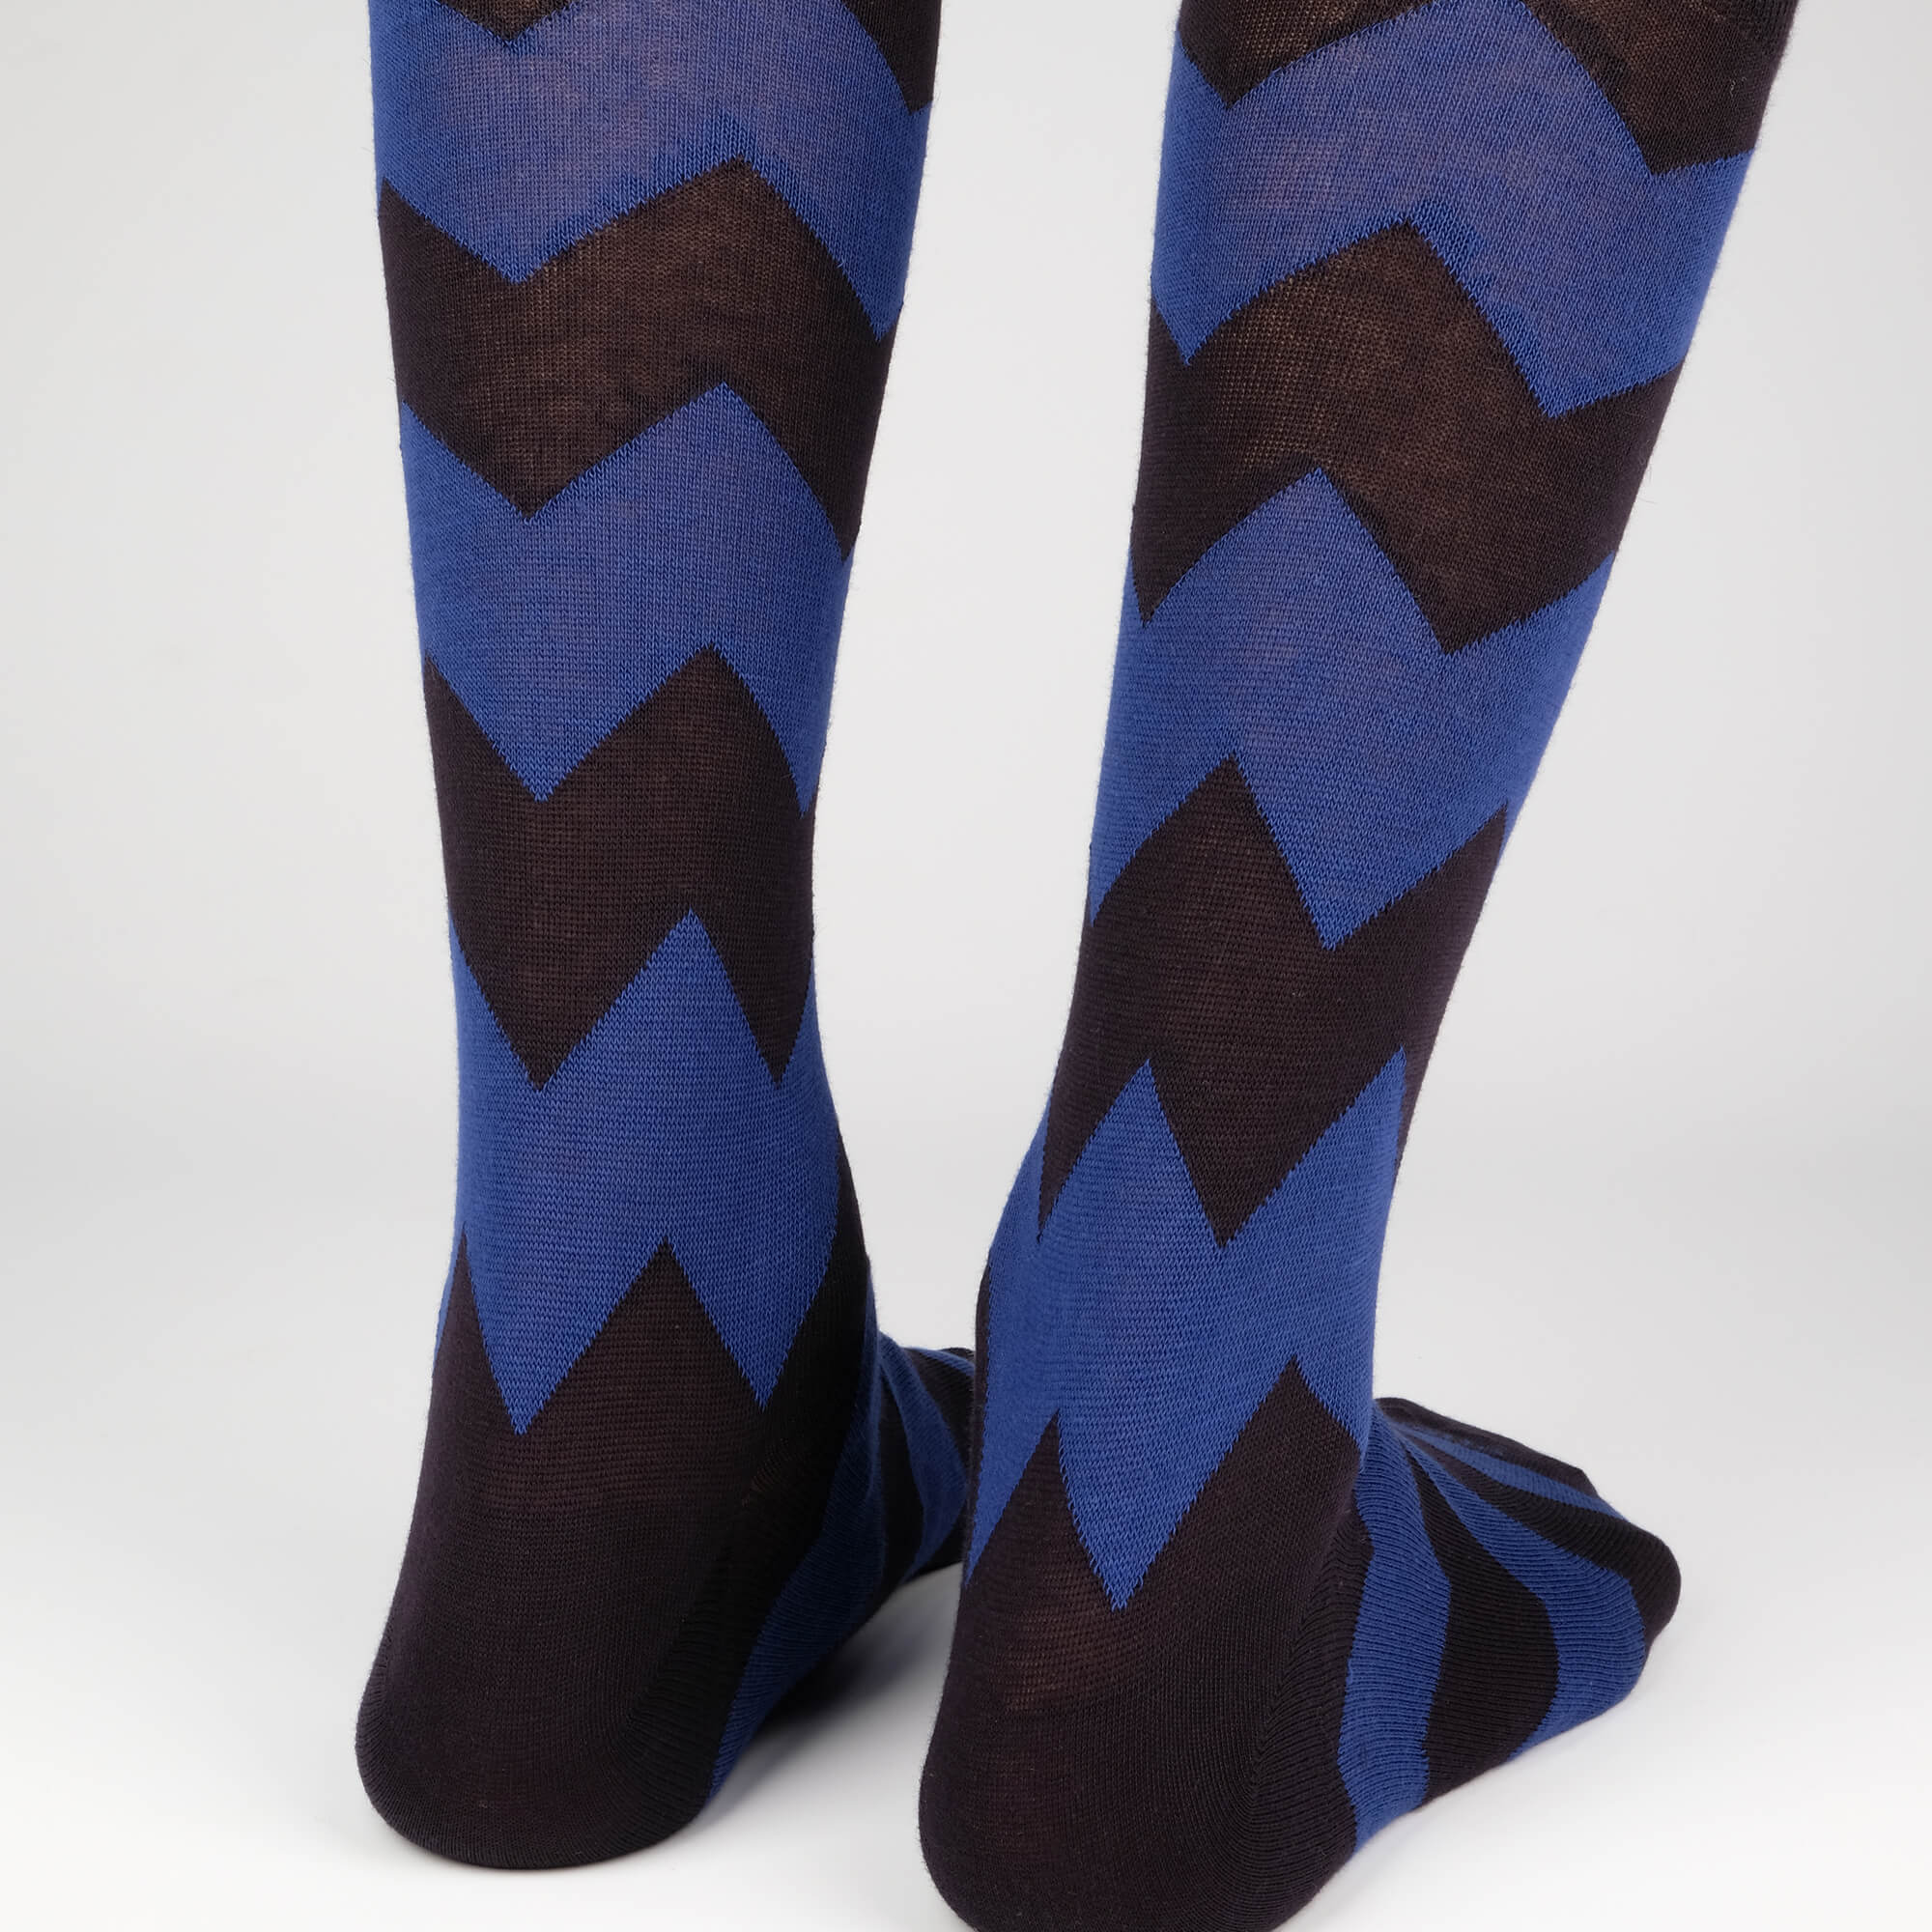 Matterhorn Stripes - Black - Mens Socks | Etiquette Clothiers Global Official